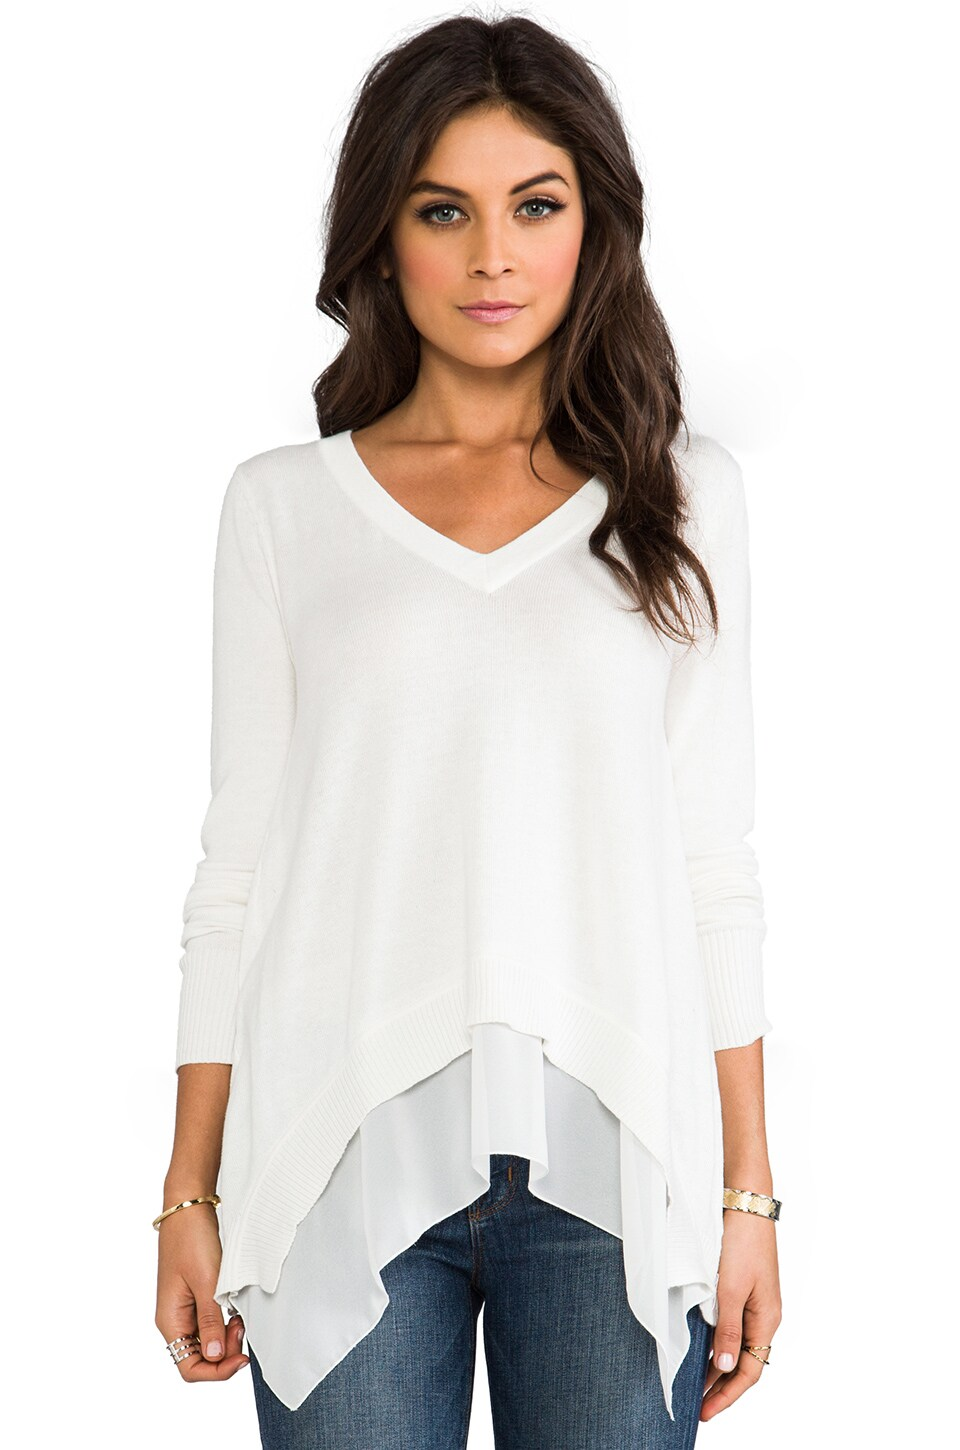 Central Park West Rimini Sweater in Ivory